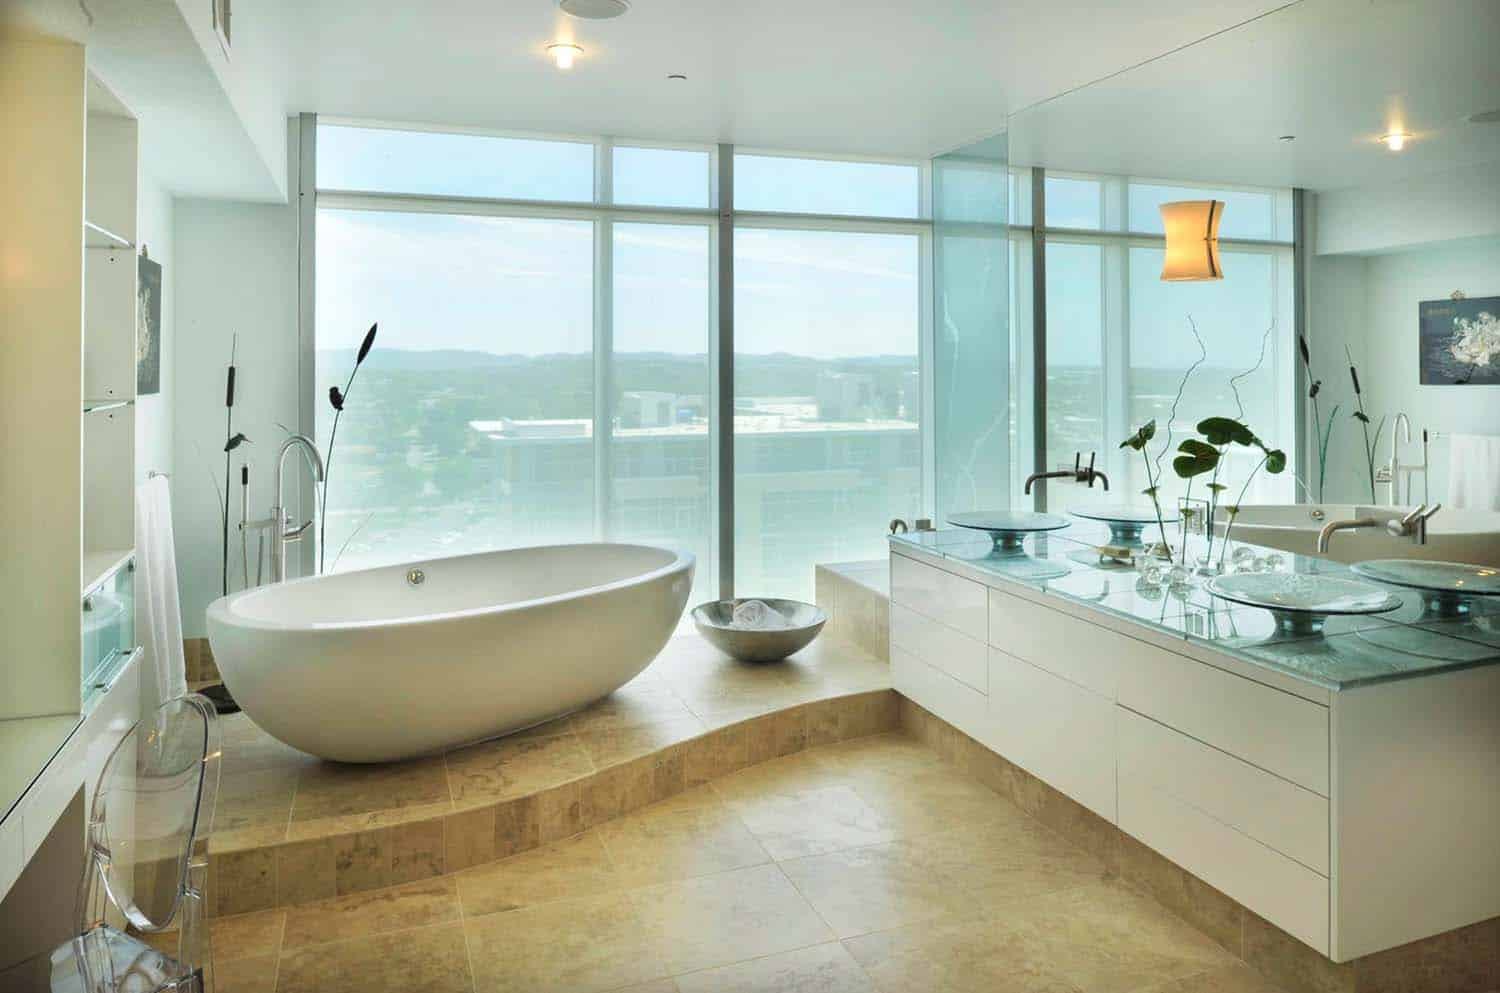 Freestanding Bathtub Ideas 02 1 Kindesign